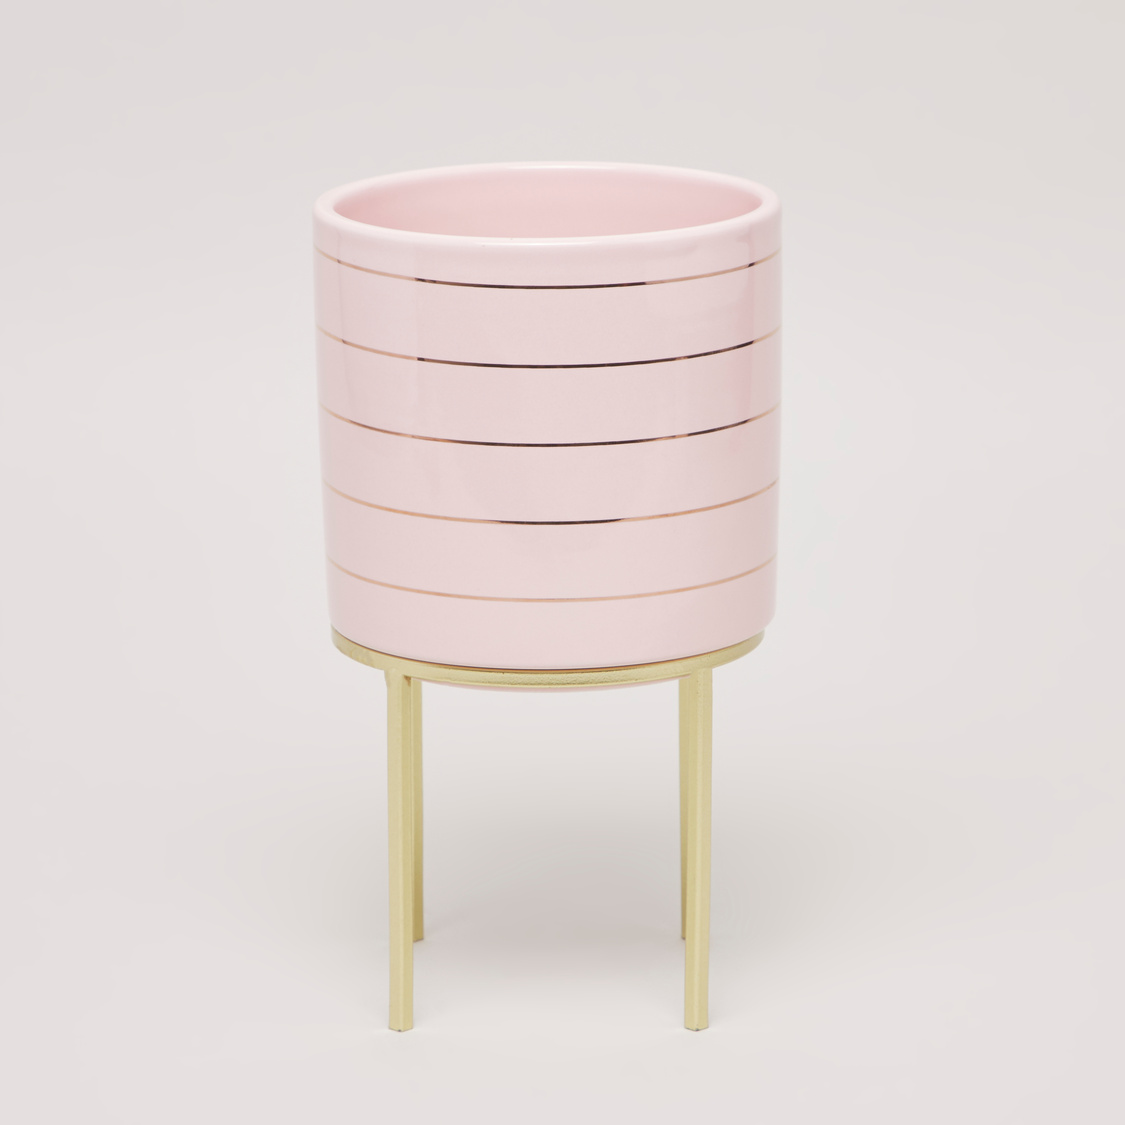 Cylindrical Flower Pot with Stand- 13x13x21 cms